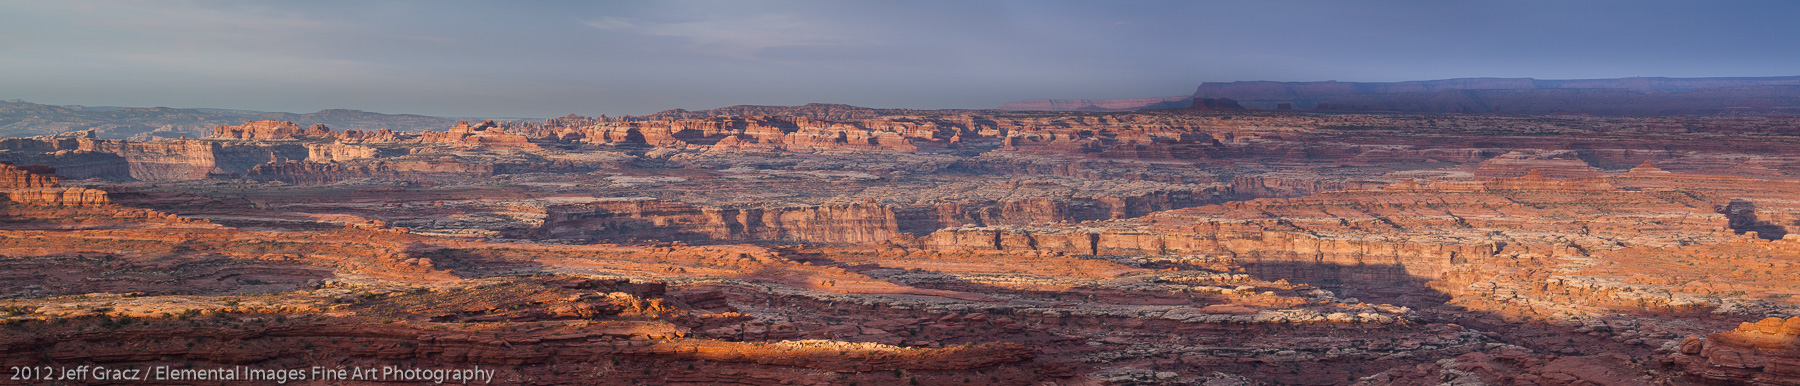 View from the White Crack | Canyonlands National Park | UT | USA - © 2012 Jeff Gracz / Elemental Images Fine Art Photography - All Rights Reserved Worldwide